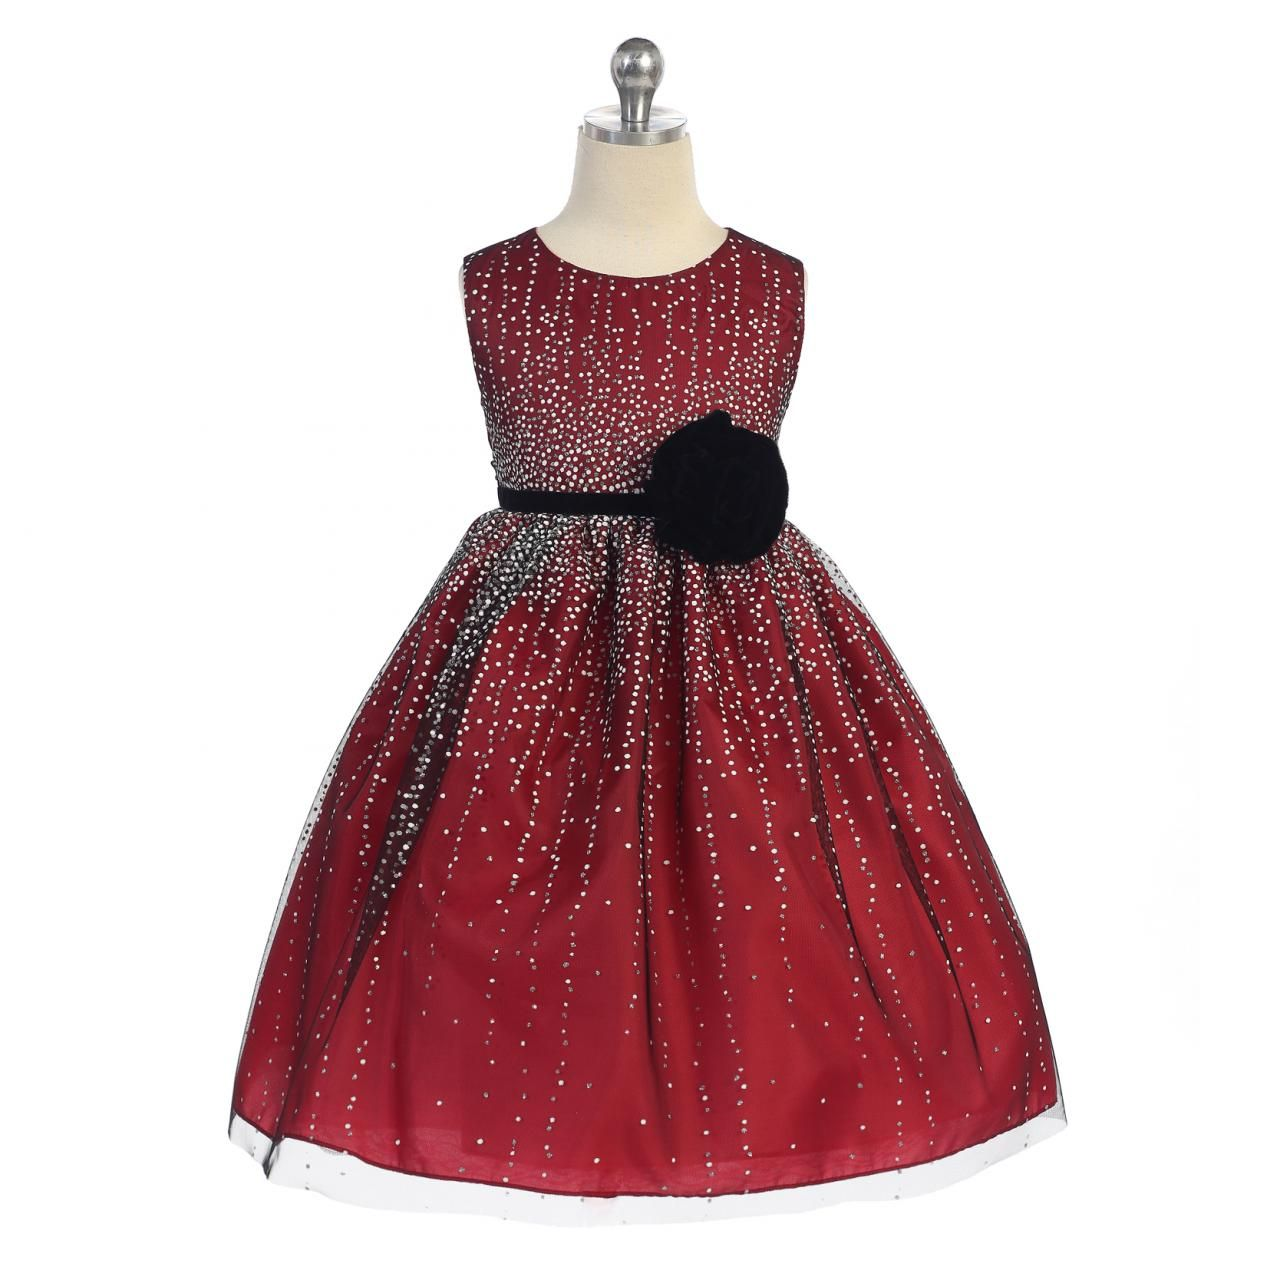 Toddler Girl Christmas Dresses | jewerly Couture ❤ Marie Evans ...